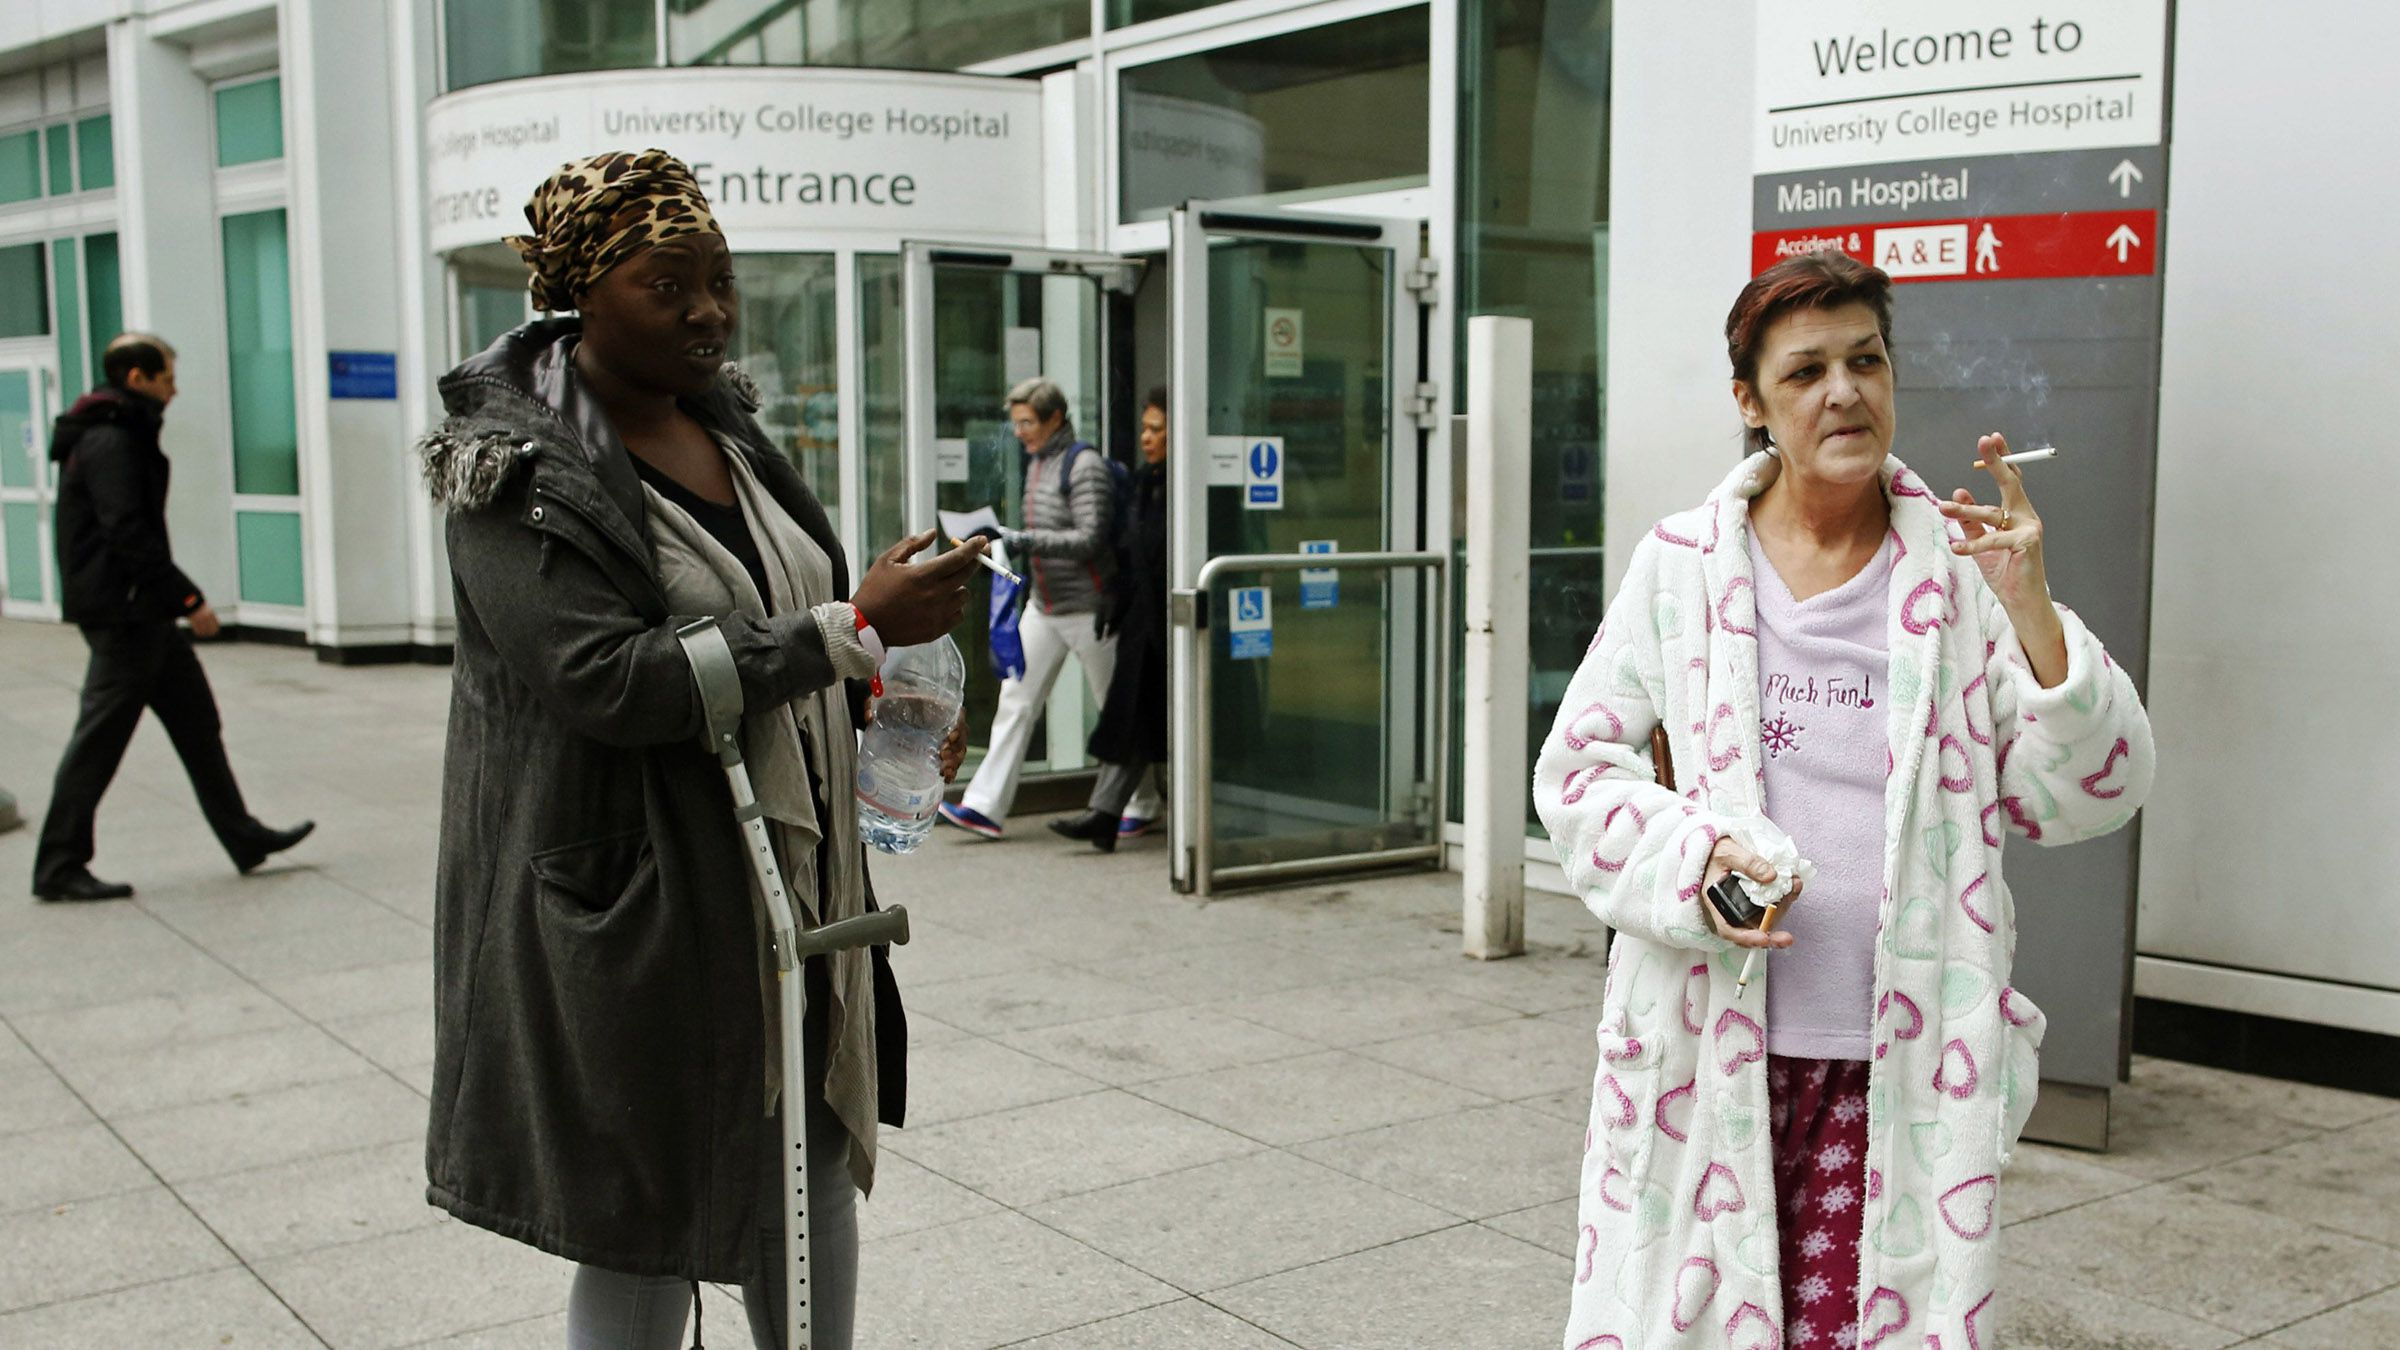 Patient Susan Paul (L) who has smoked for 20 years, stands with throat cancer patient Margaret, who has smoked for 40 years and will have her voice box removed, as they smoke outside University College Hospital in central London November 27, 2013. The National Institute for Health and Care Excellence said Britain's National Health Service should ban smoking at all hospital grounds in England.